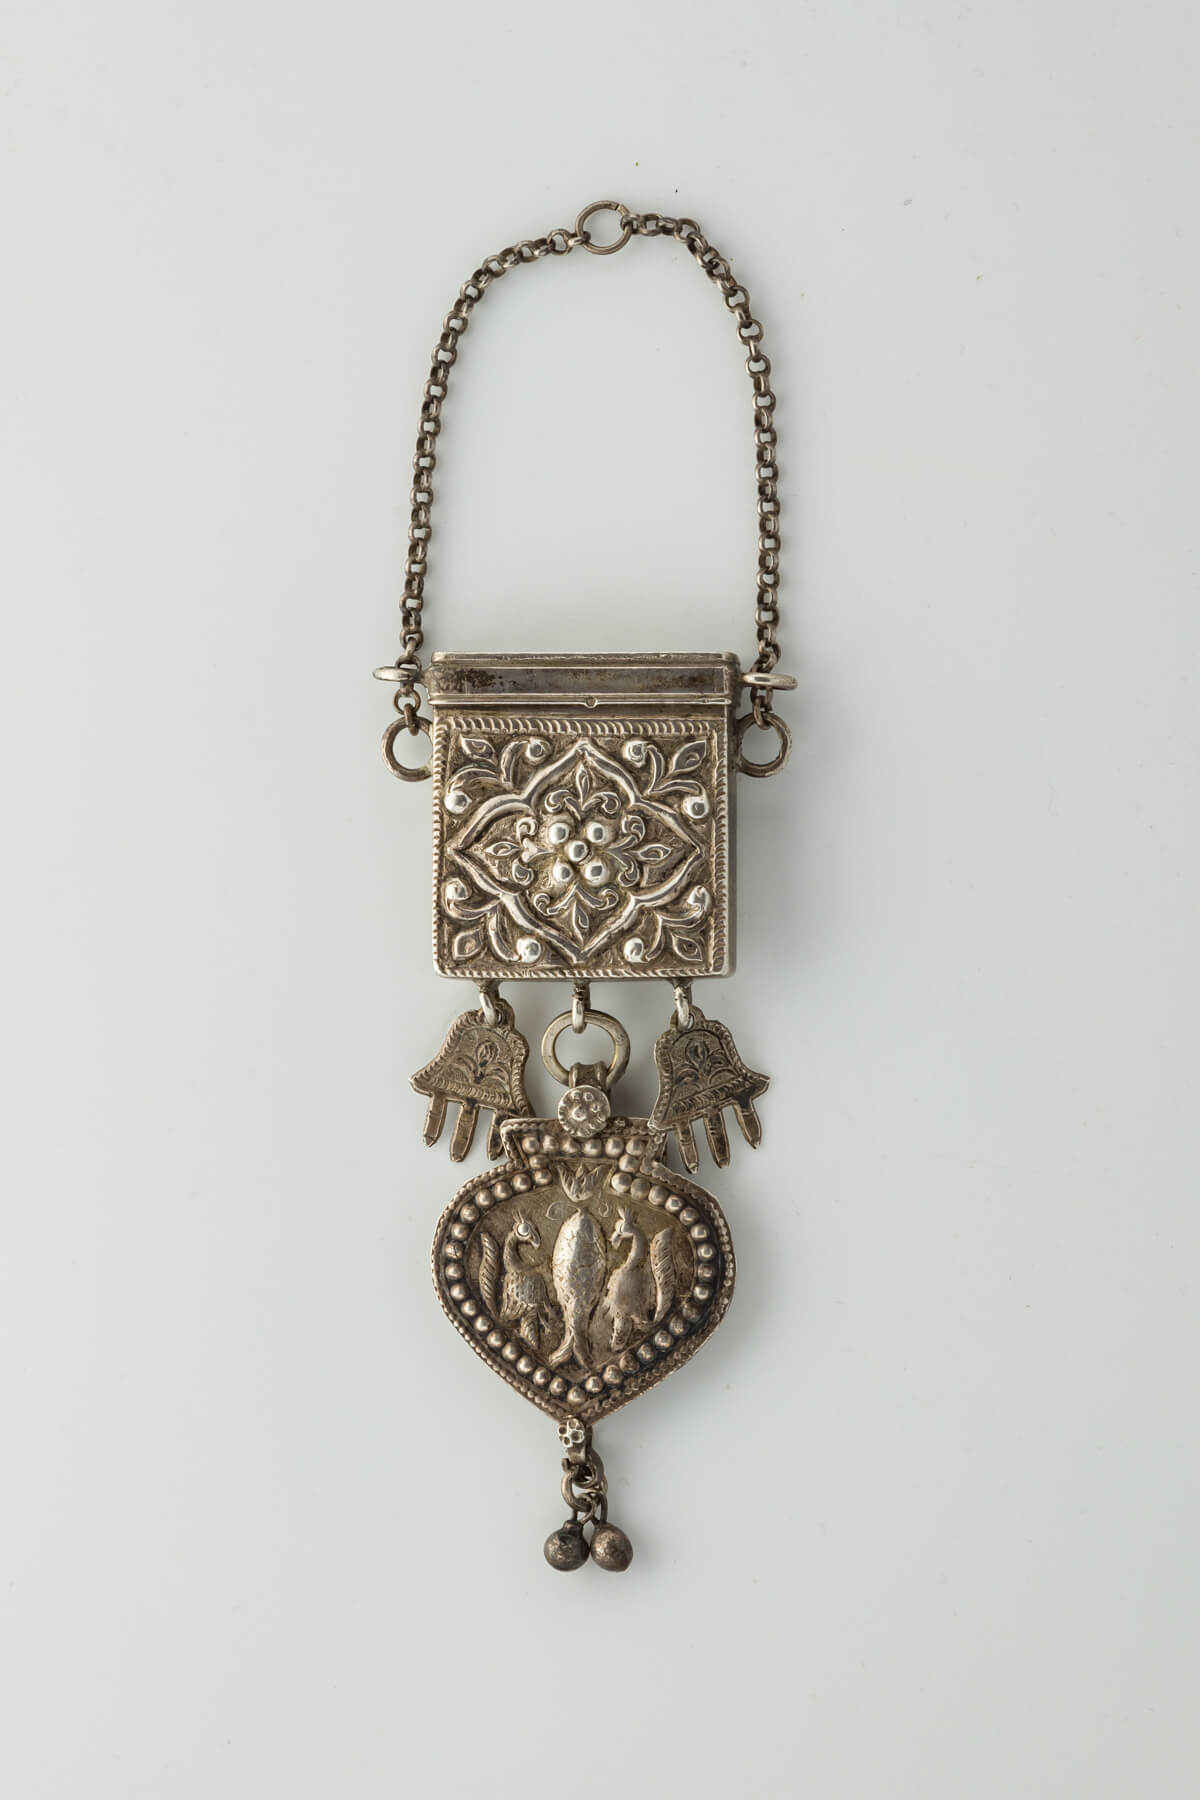 026. An Exceptionally Rare Silver Amuletic Necklace